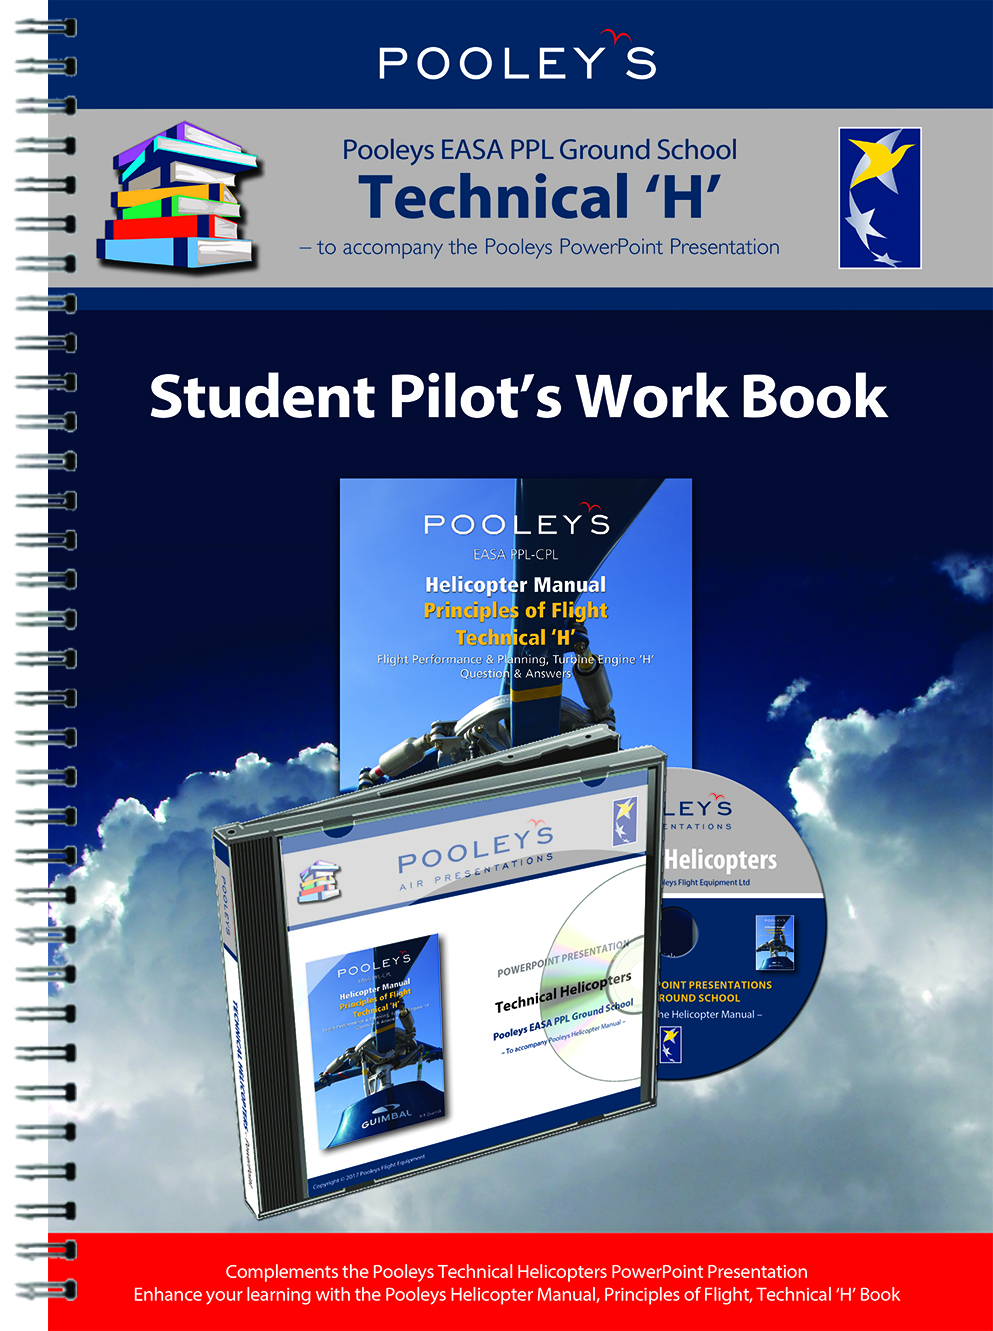 Pooleys Air Presentations – Technical Helicopter Student Pilot's Work Book (b/w, no text)